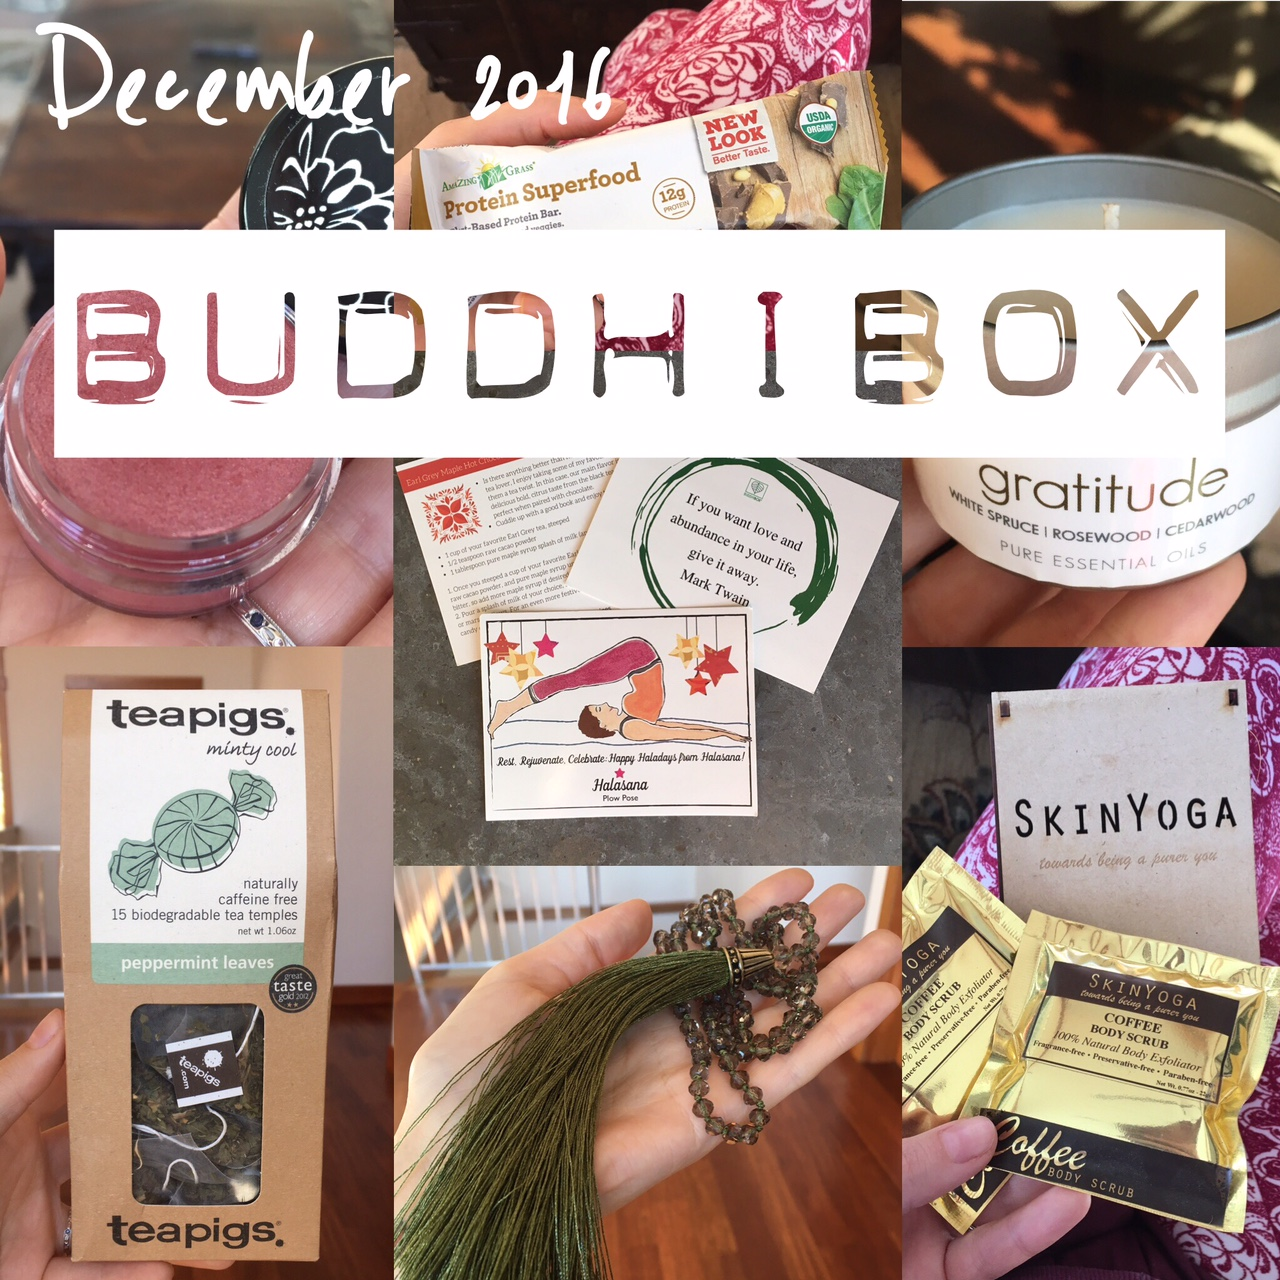 buddhibox-december-2016